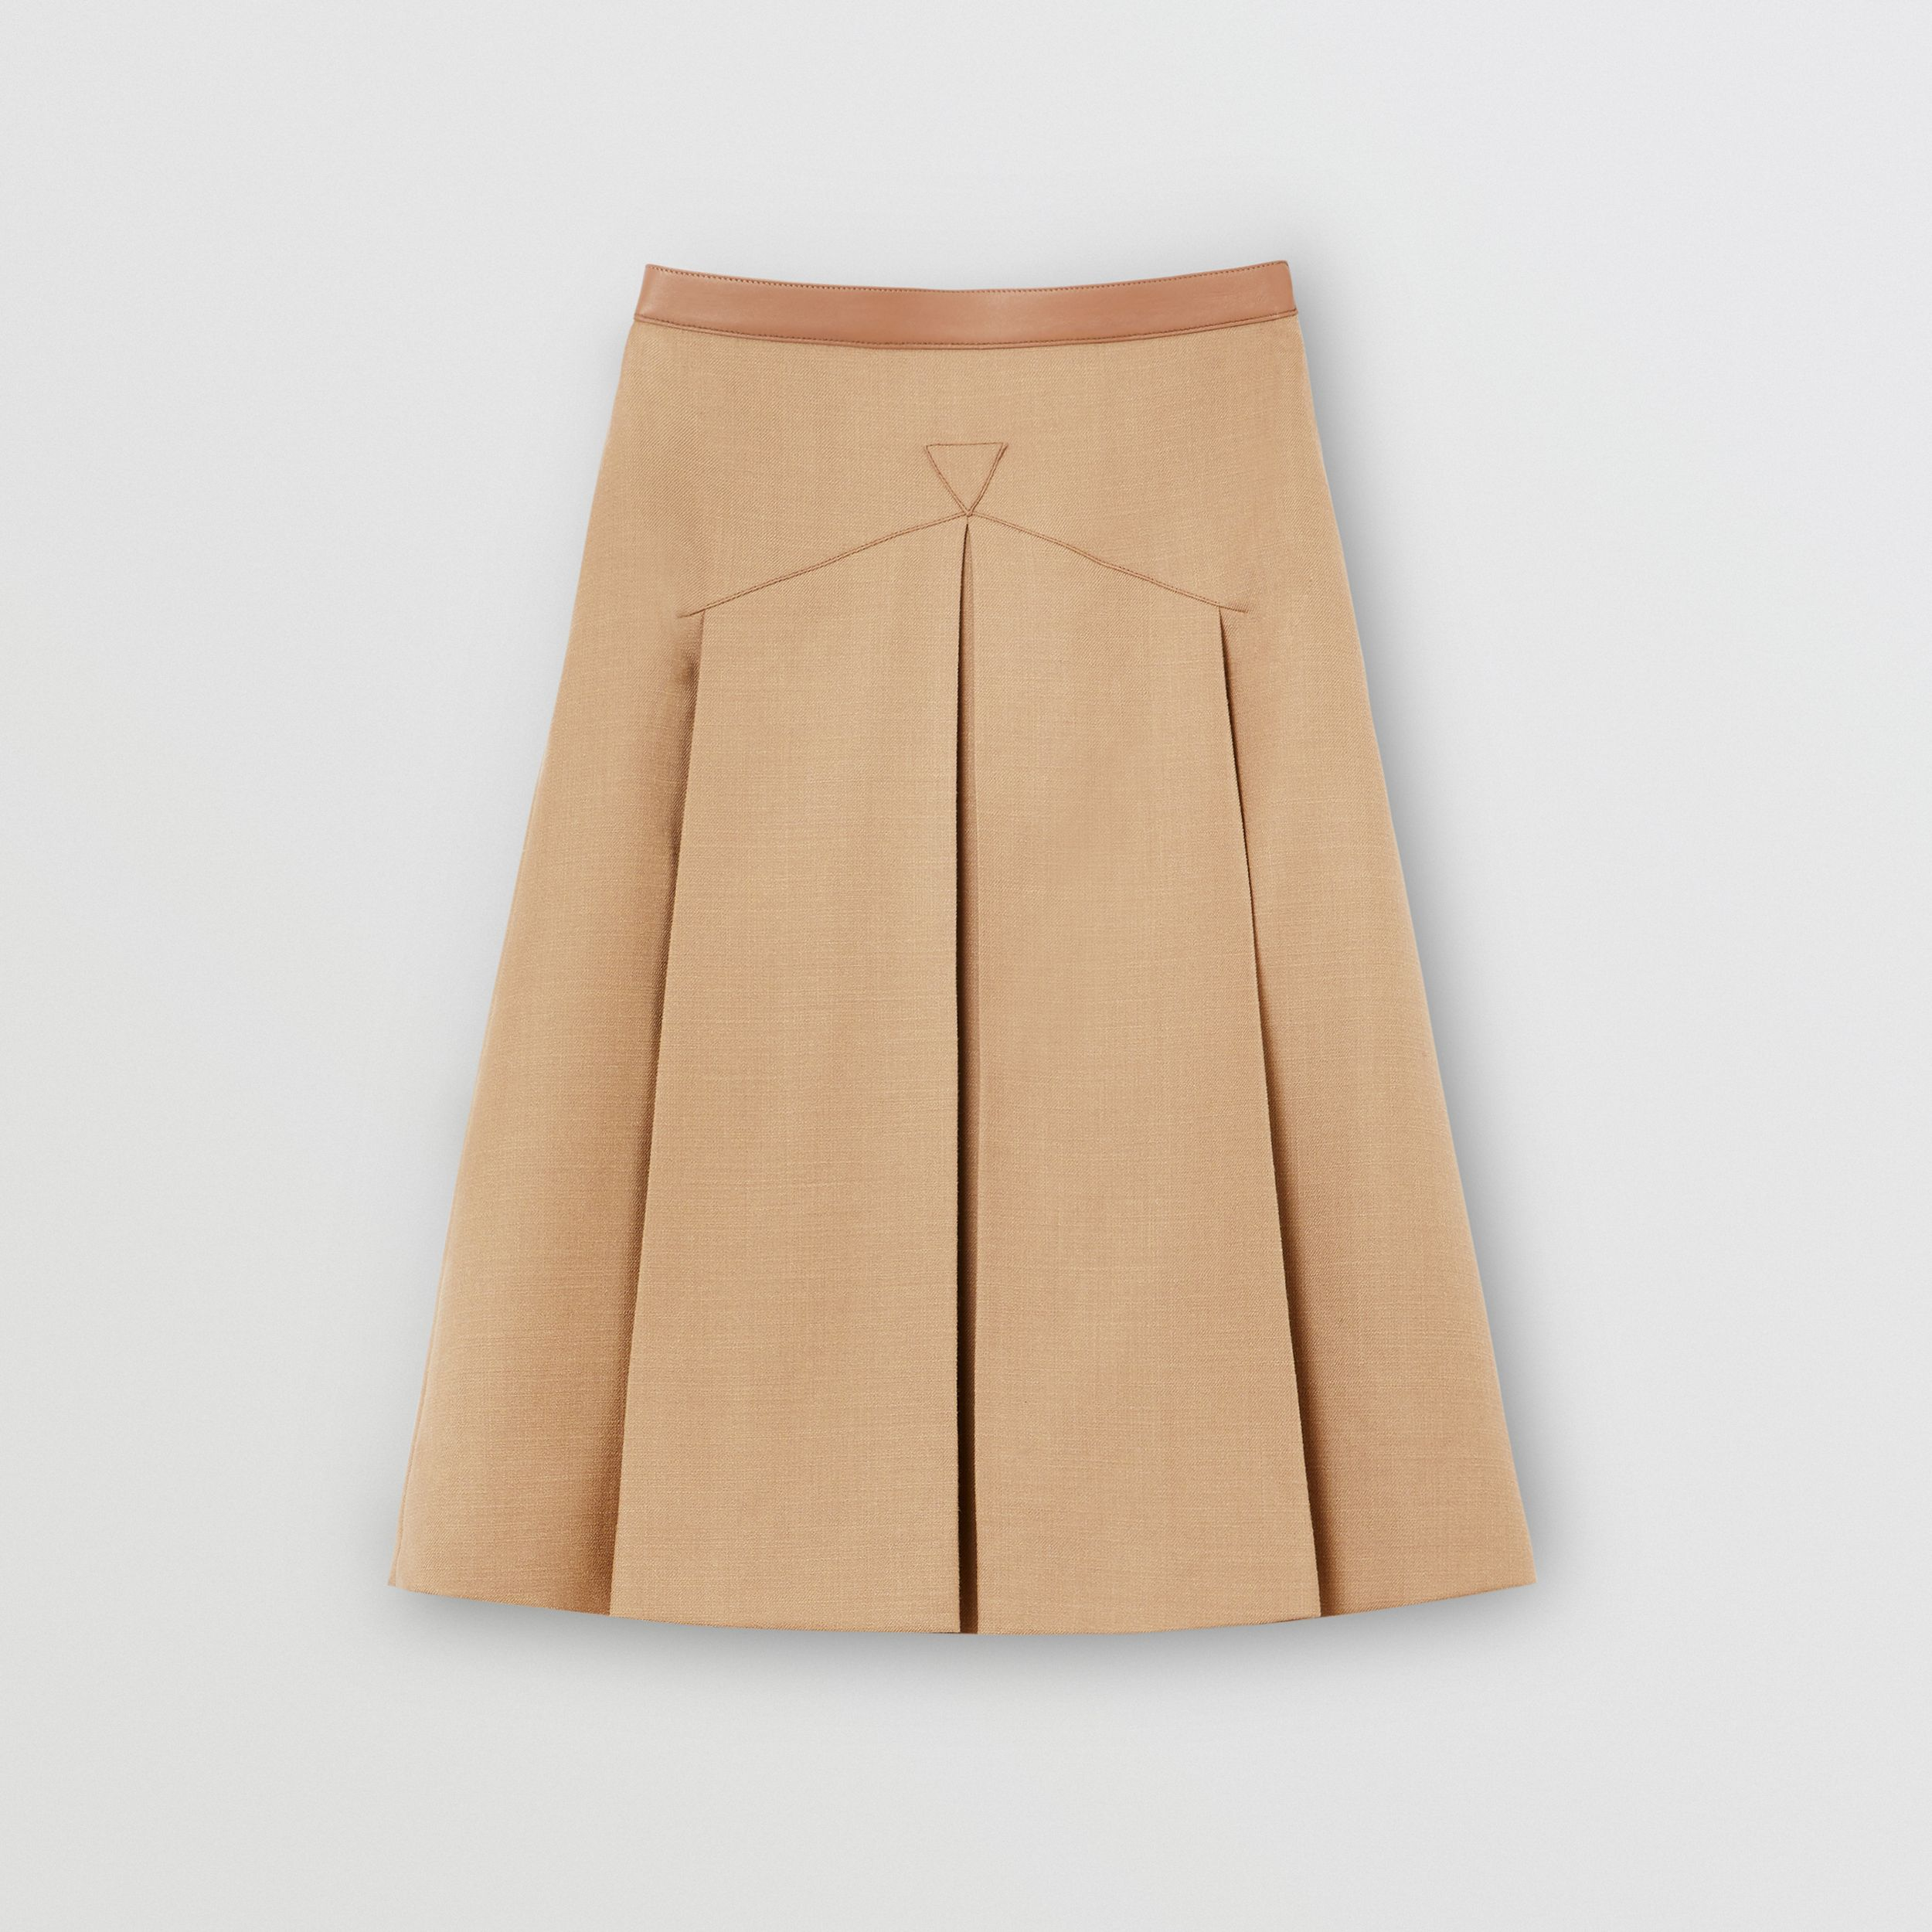 Lambskin Trim Box-pleated Wool Silk Skirt in Camel - Women | Burberry Australia - 4